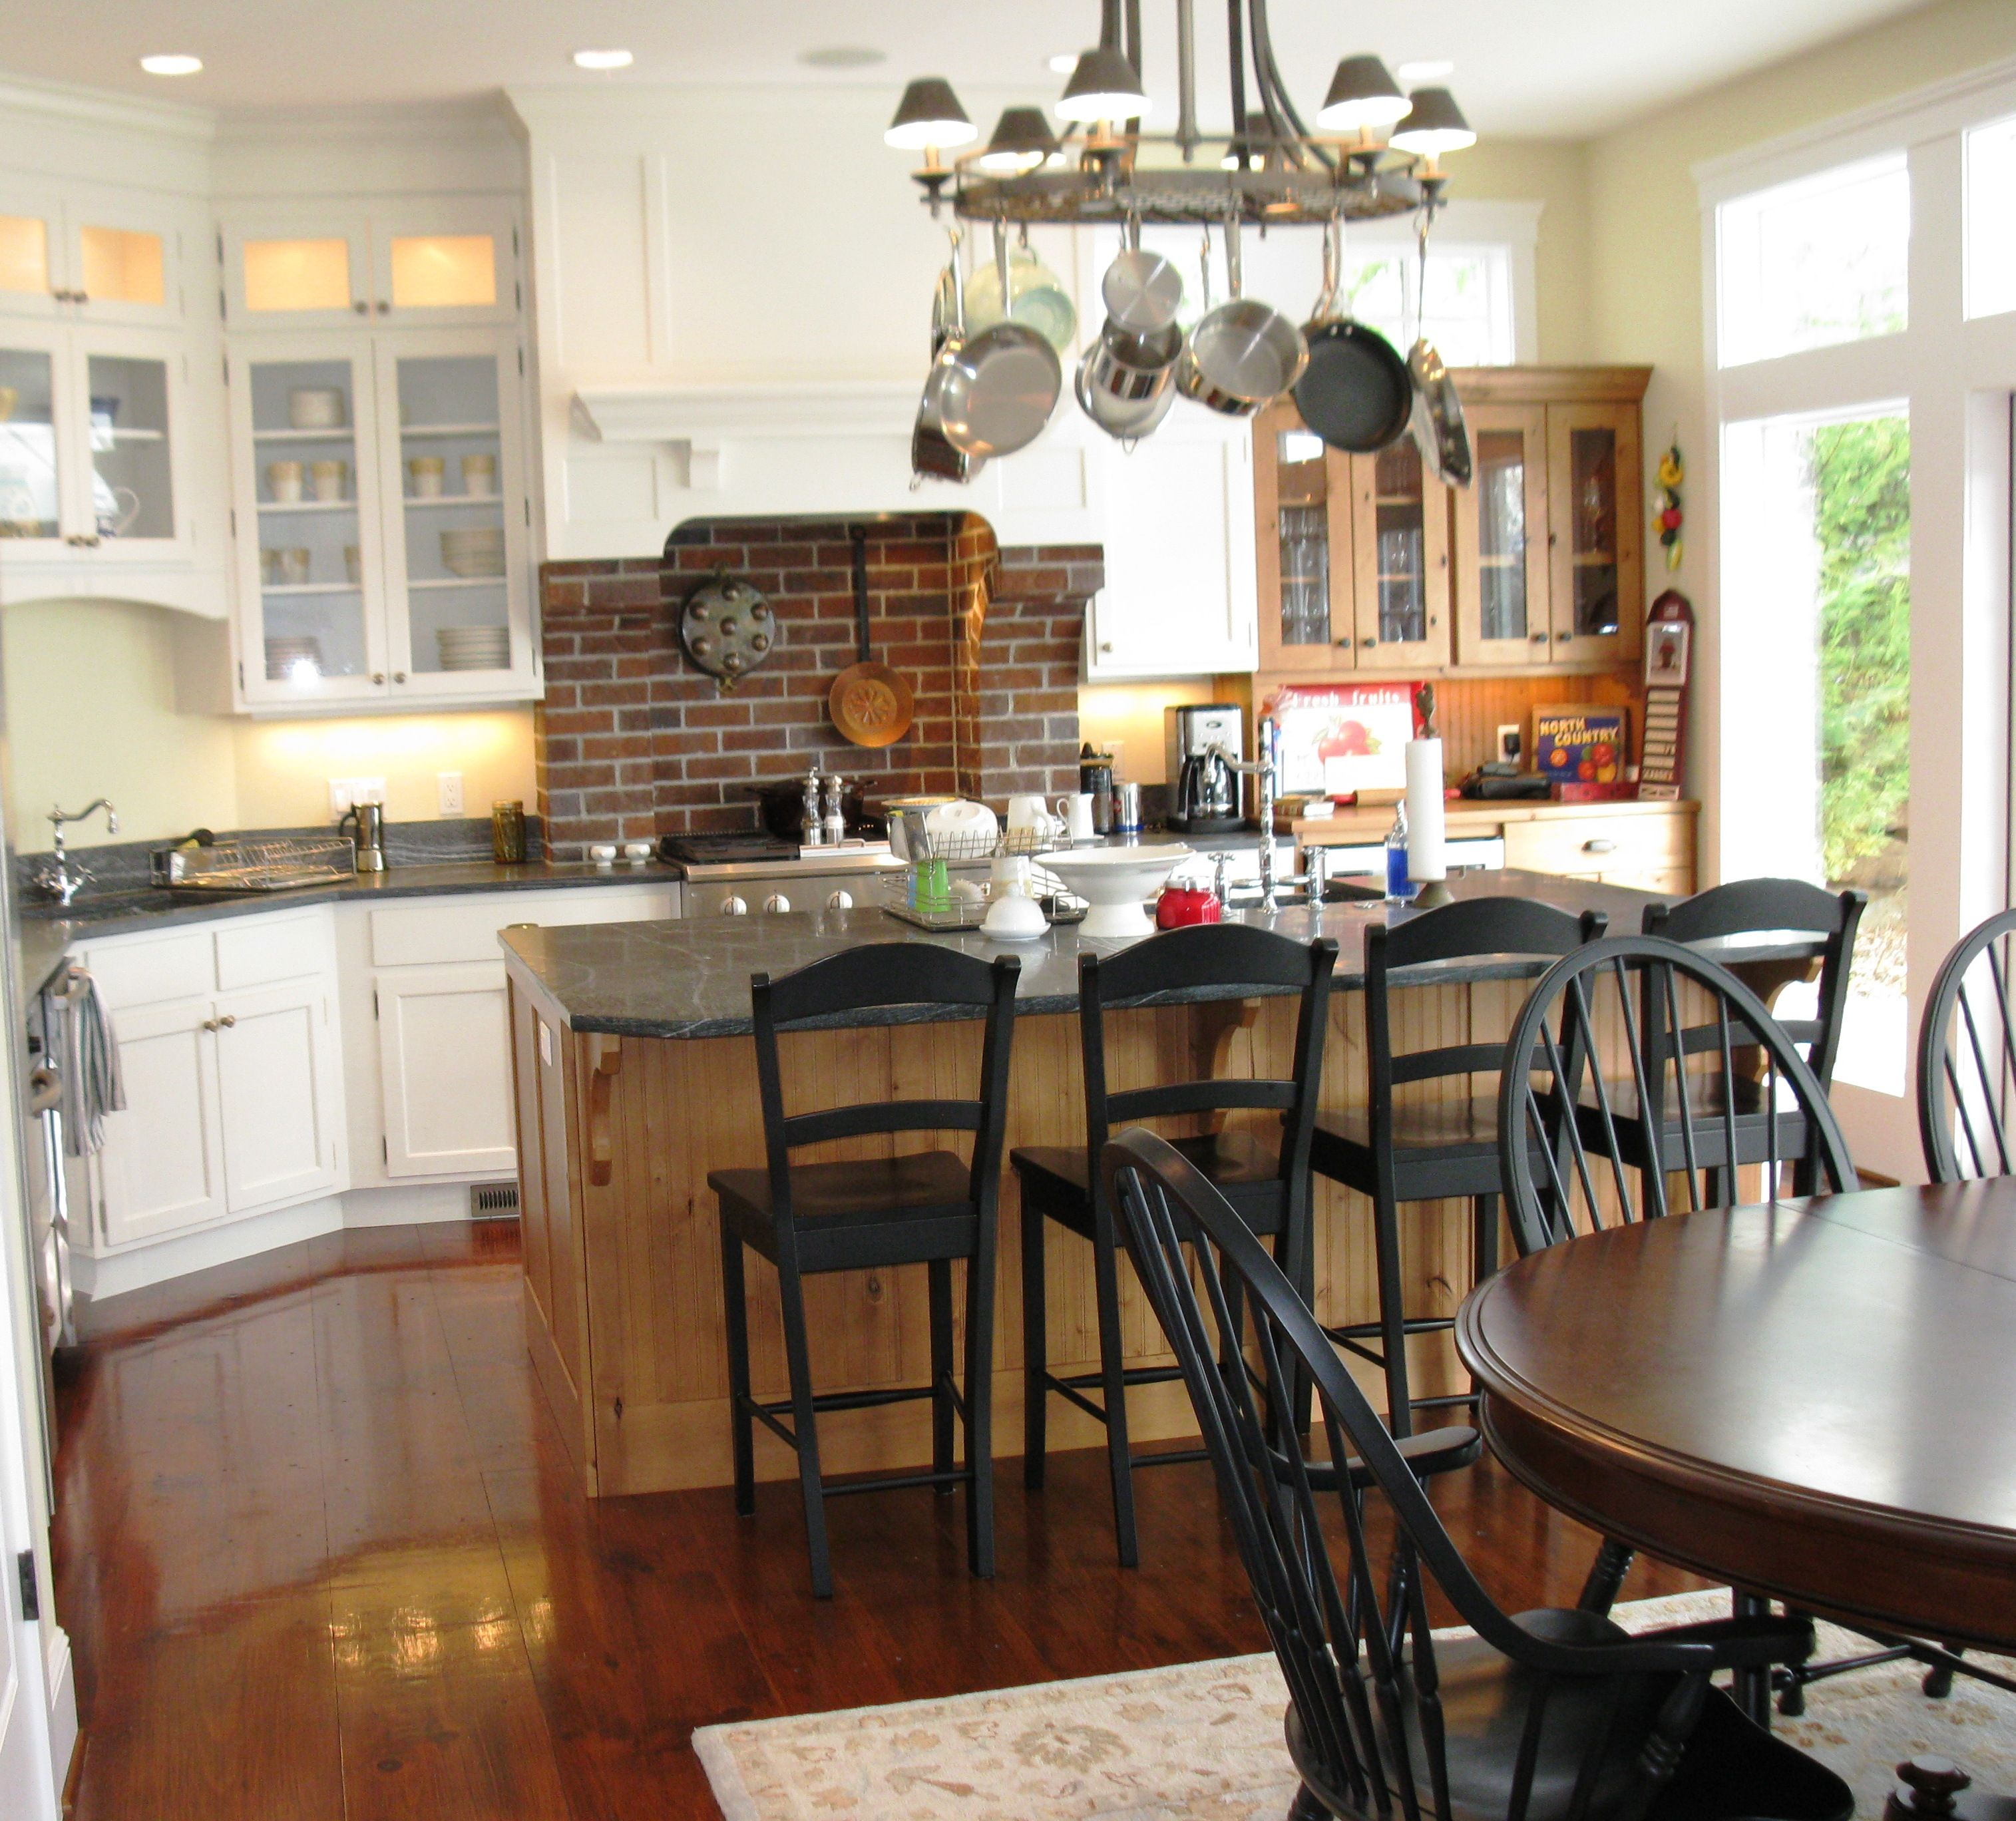 Nantucket style kitchen with brick stove backsplash